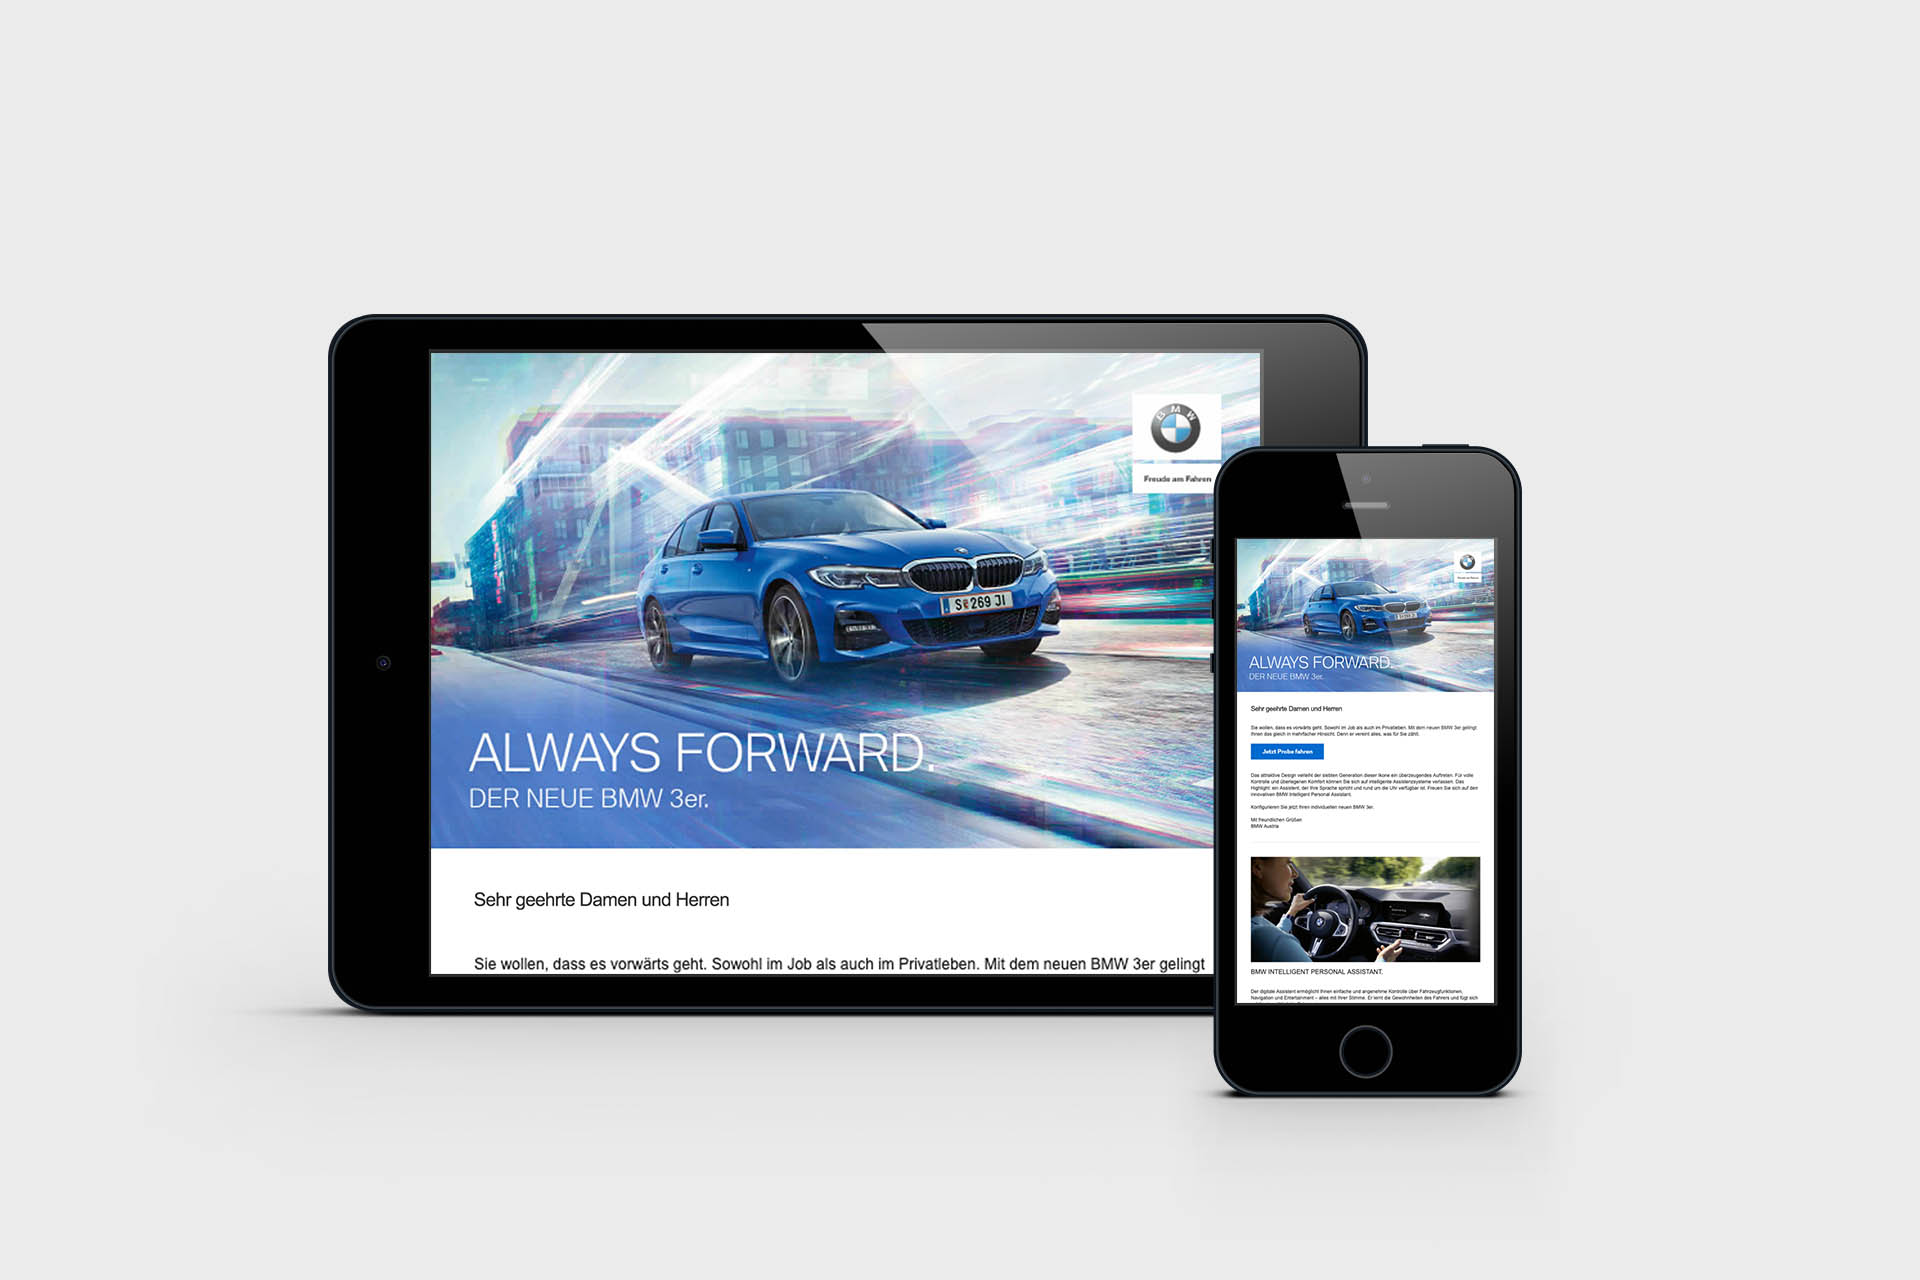 https://www.performance-werk.de/wp-content/uploads/2019/03/mockup_bmw.jpg